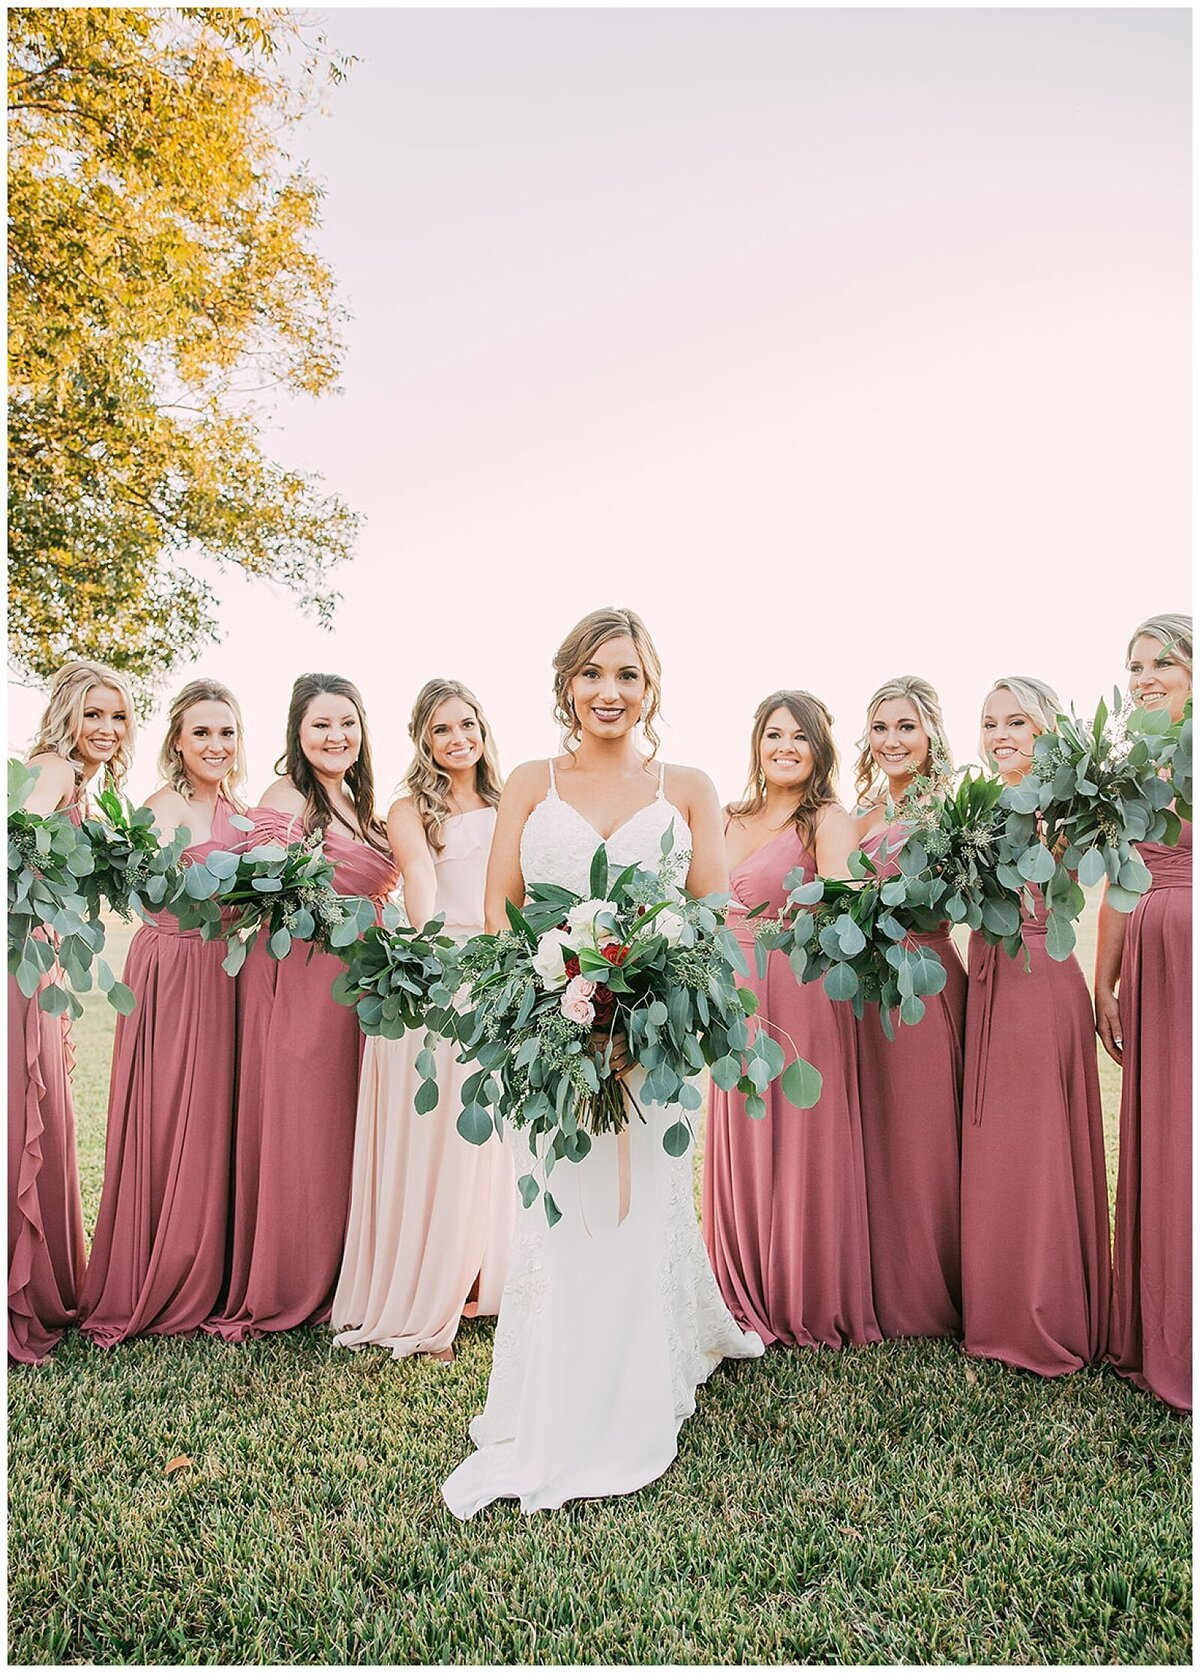 Rustic Greenery Indoor Outdoor Wedding at Emery's Buffalo Creek - Houston Wedding Venue_0123